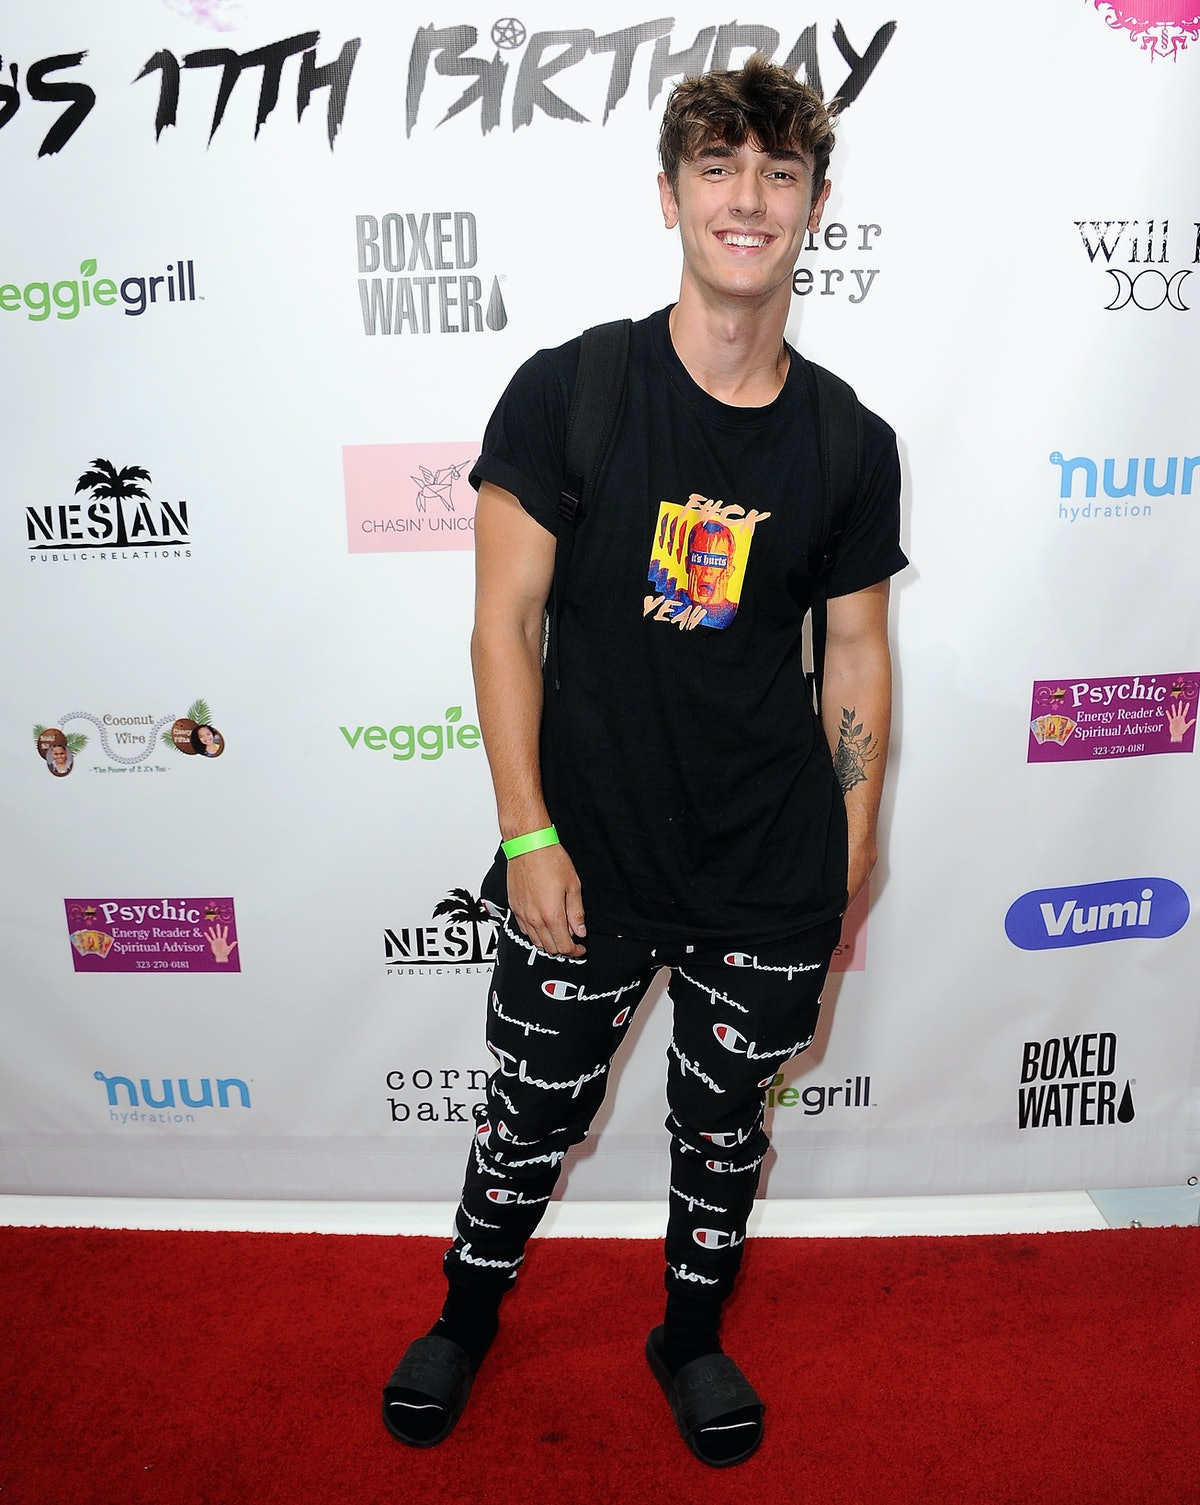 BURBANK, CA - AUGUST 17: Bryce Hall attends Singer Will B's 17th Birthday Party held at Starwest Stu...